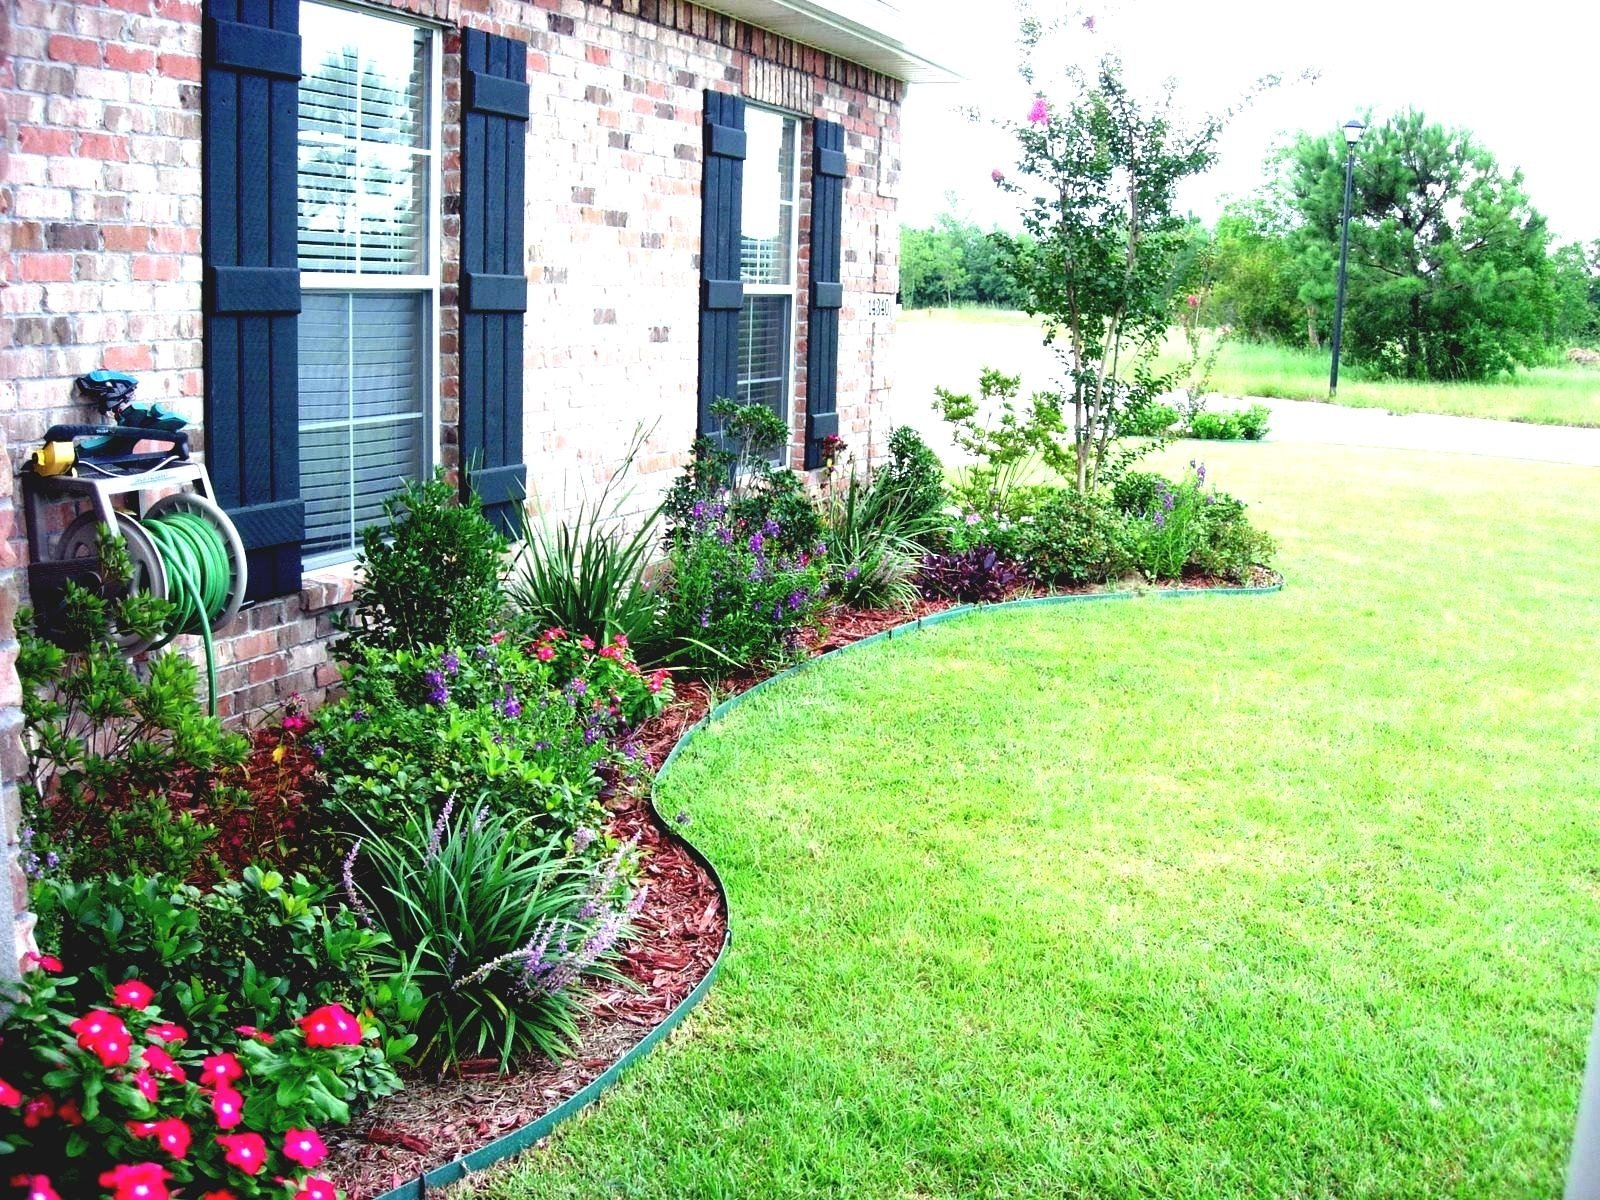 10 Lovable Front Of The House Landscaping Ideas best front house landscaping ideas on pinterest yard and eefdbaeb 1 2020